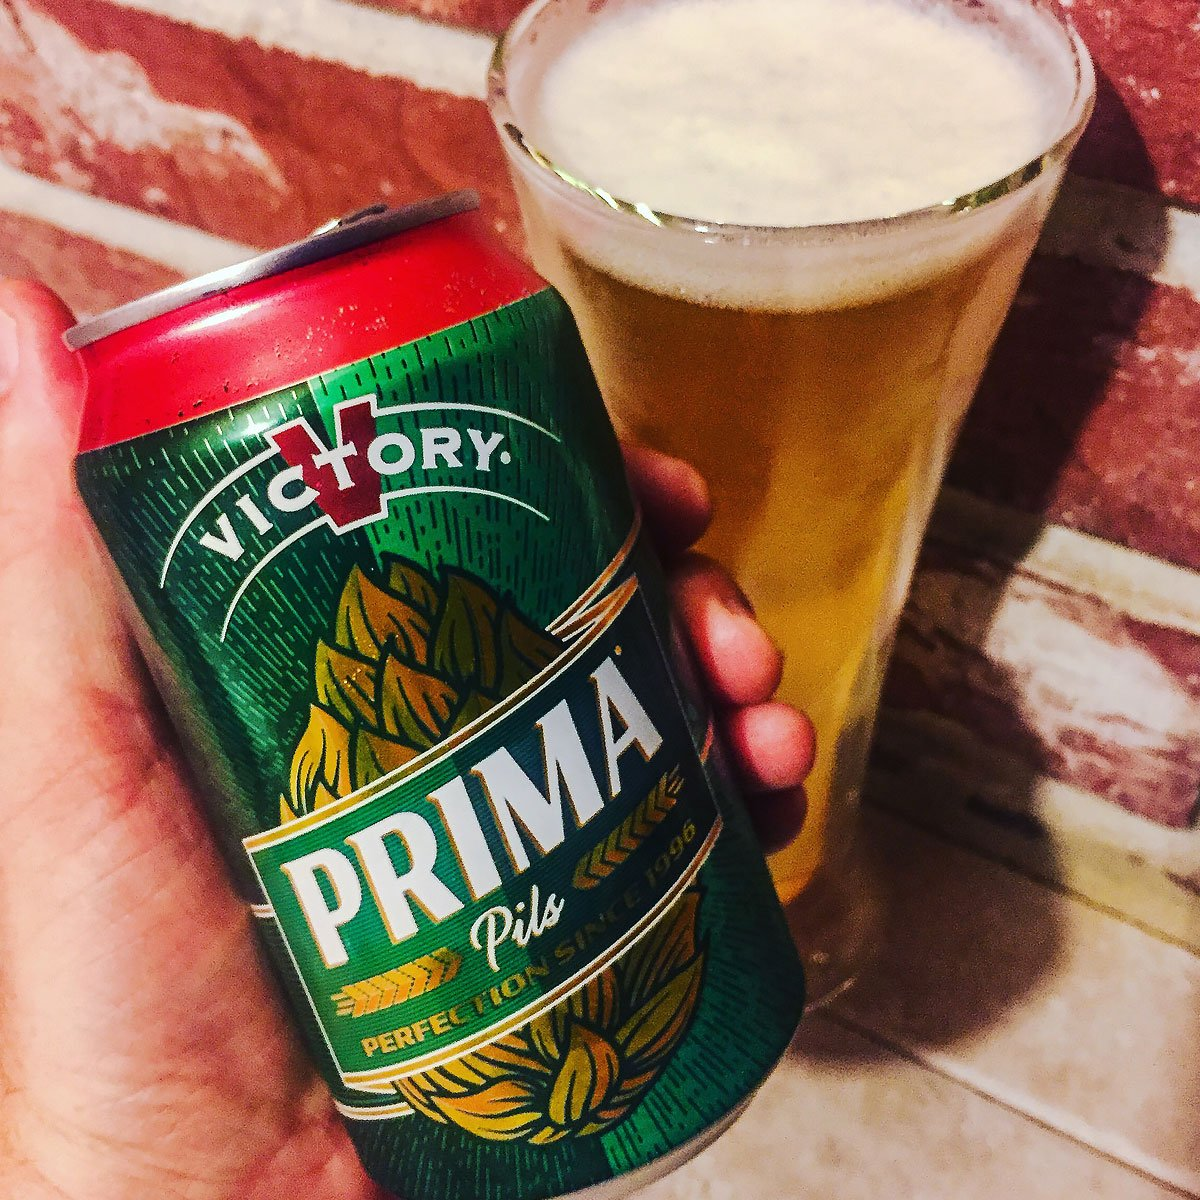 Prima Pils, a German-style Pilsener by Victory Brewing Company